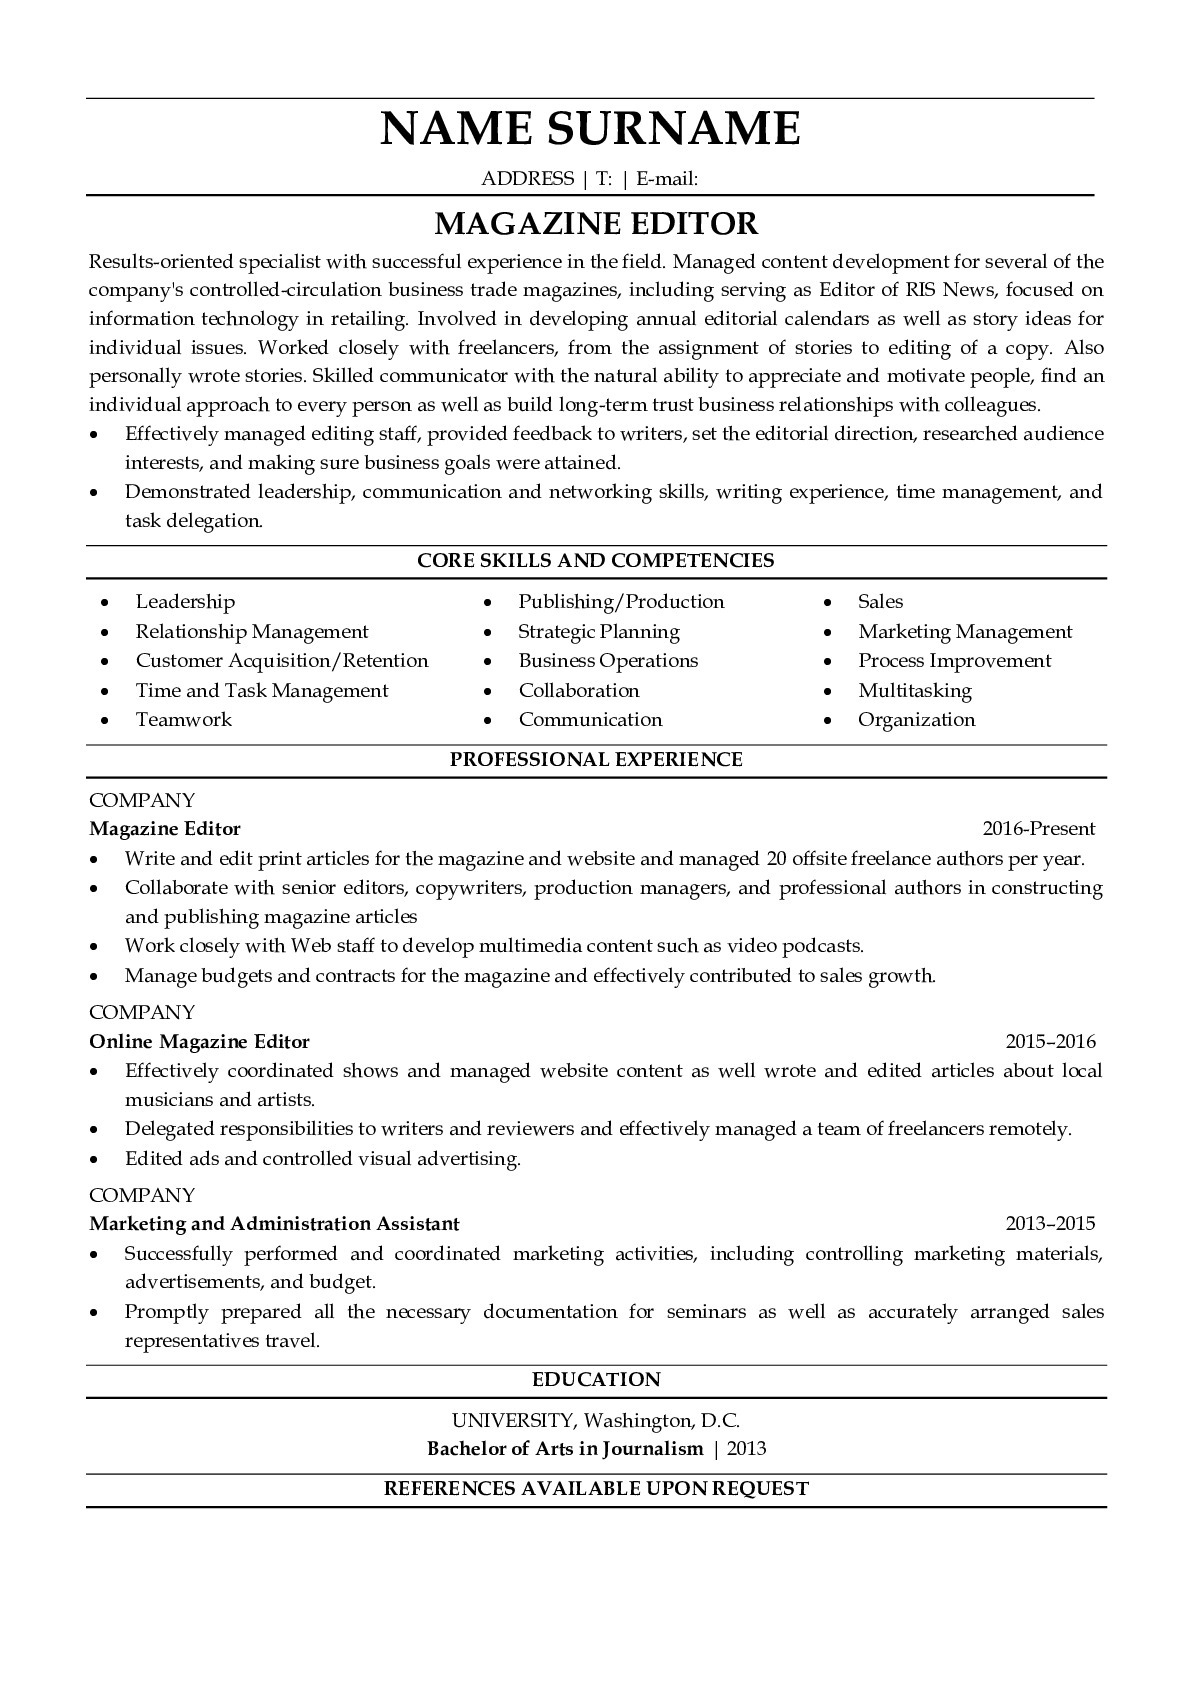 Resume Example for Magazine Editor